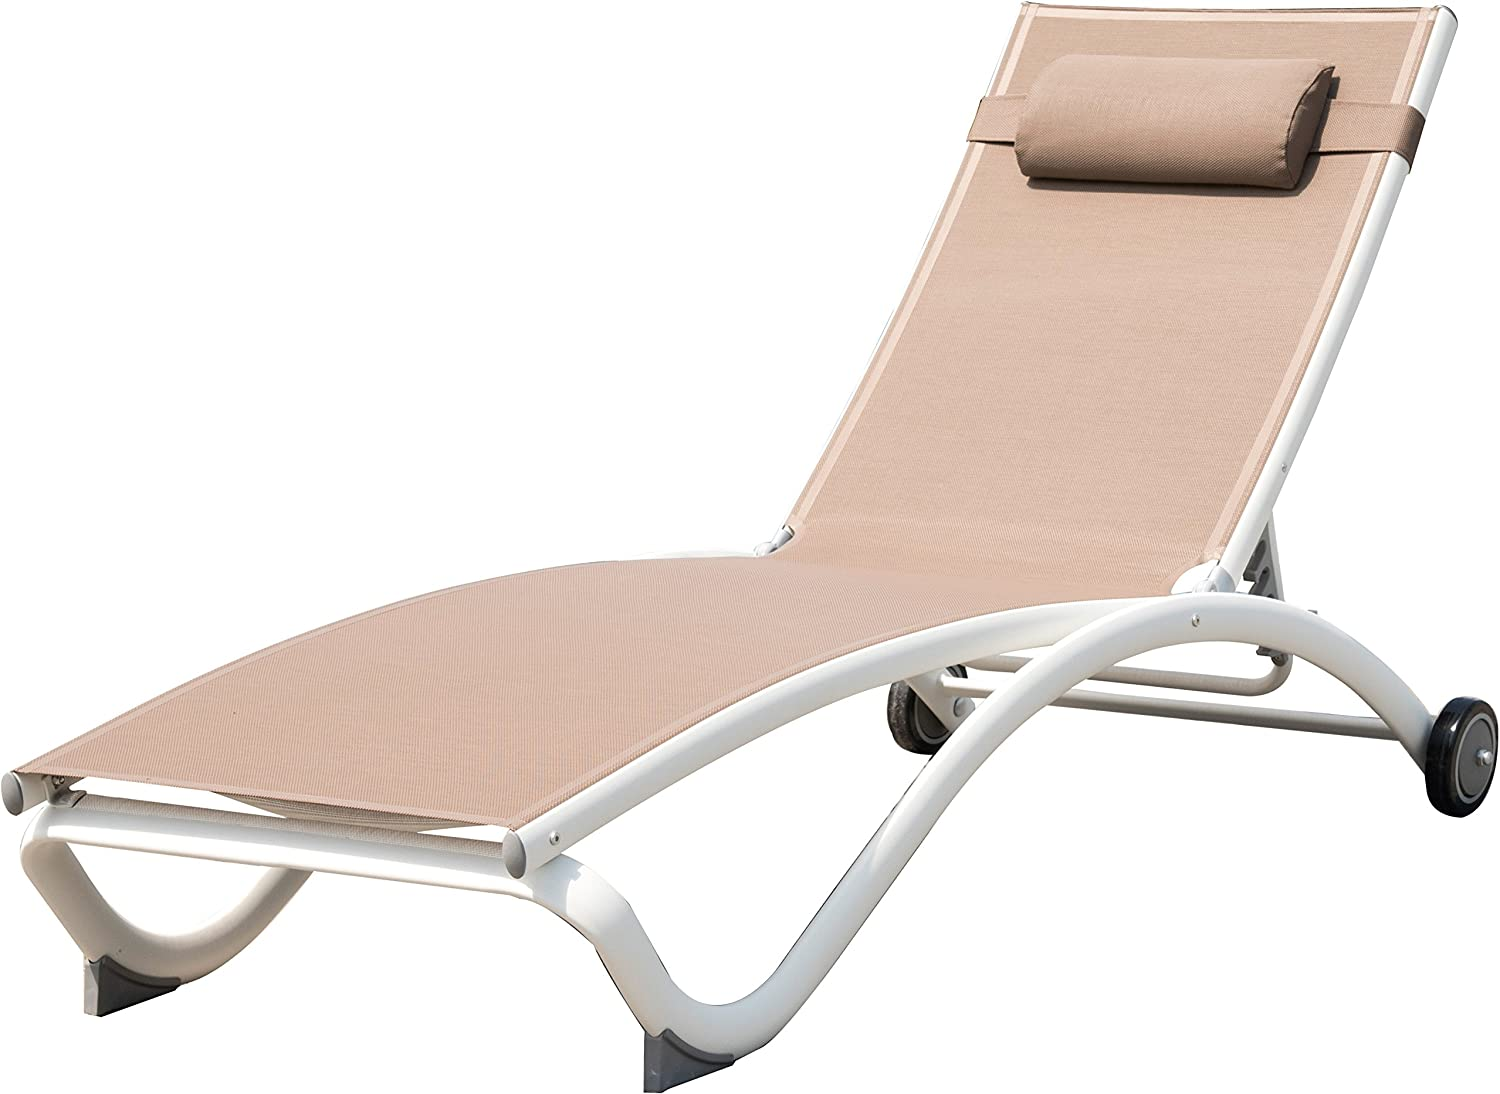 Vivere GLEL-MA Glendale Aluminum Adjustable Lounger: Amazon.ca